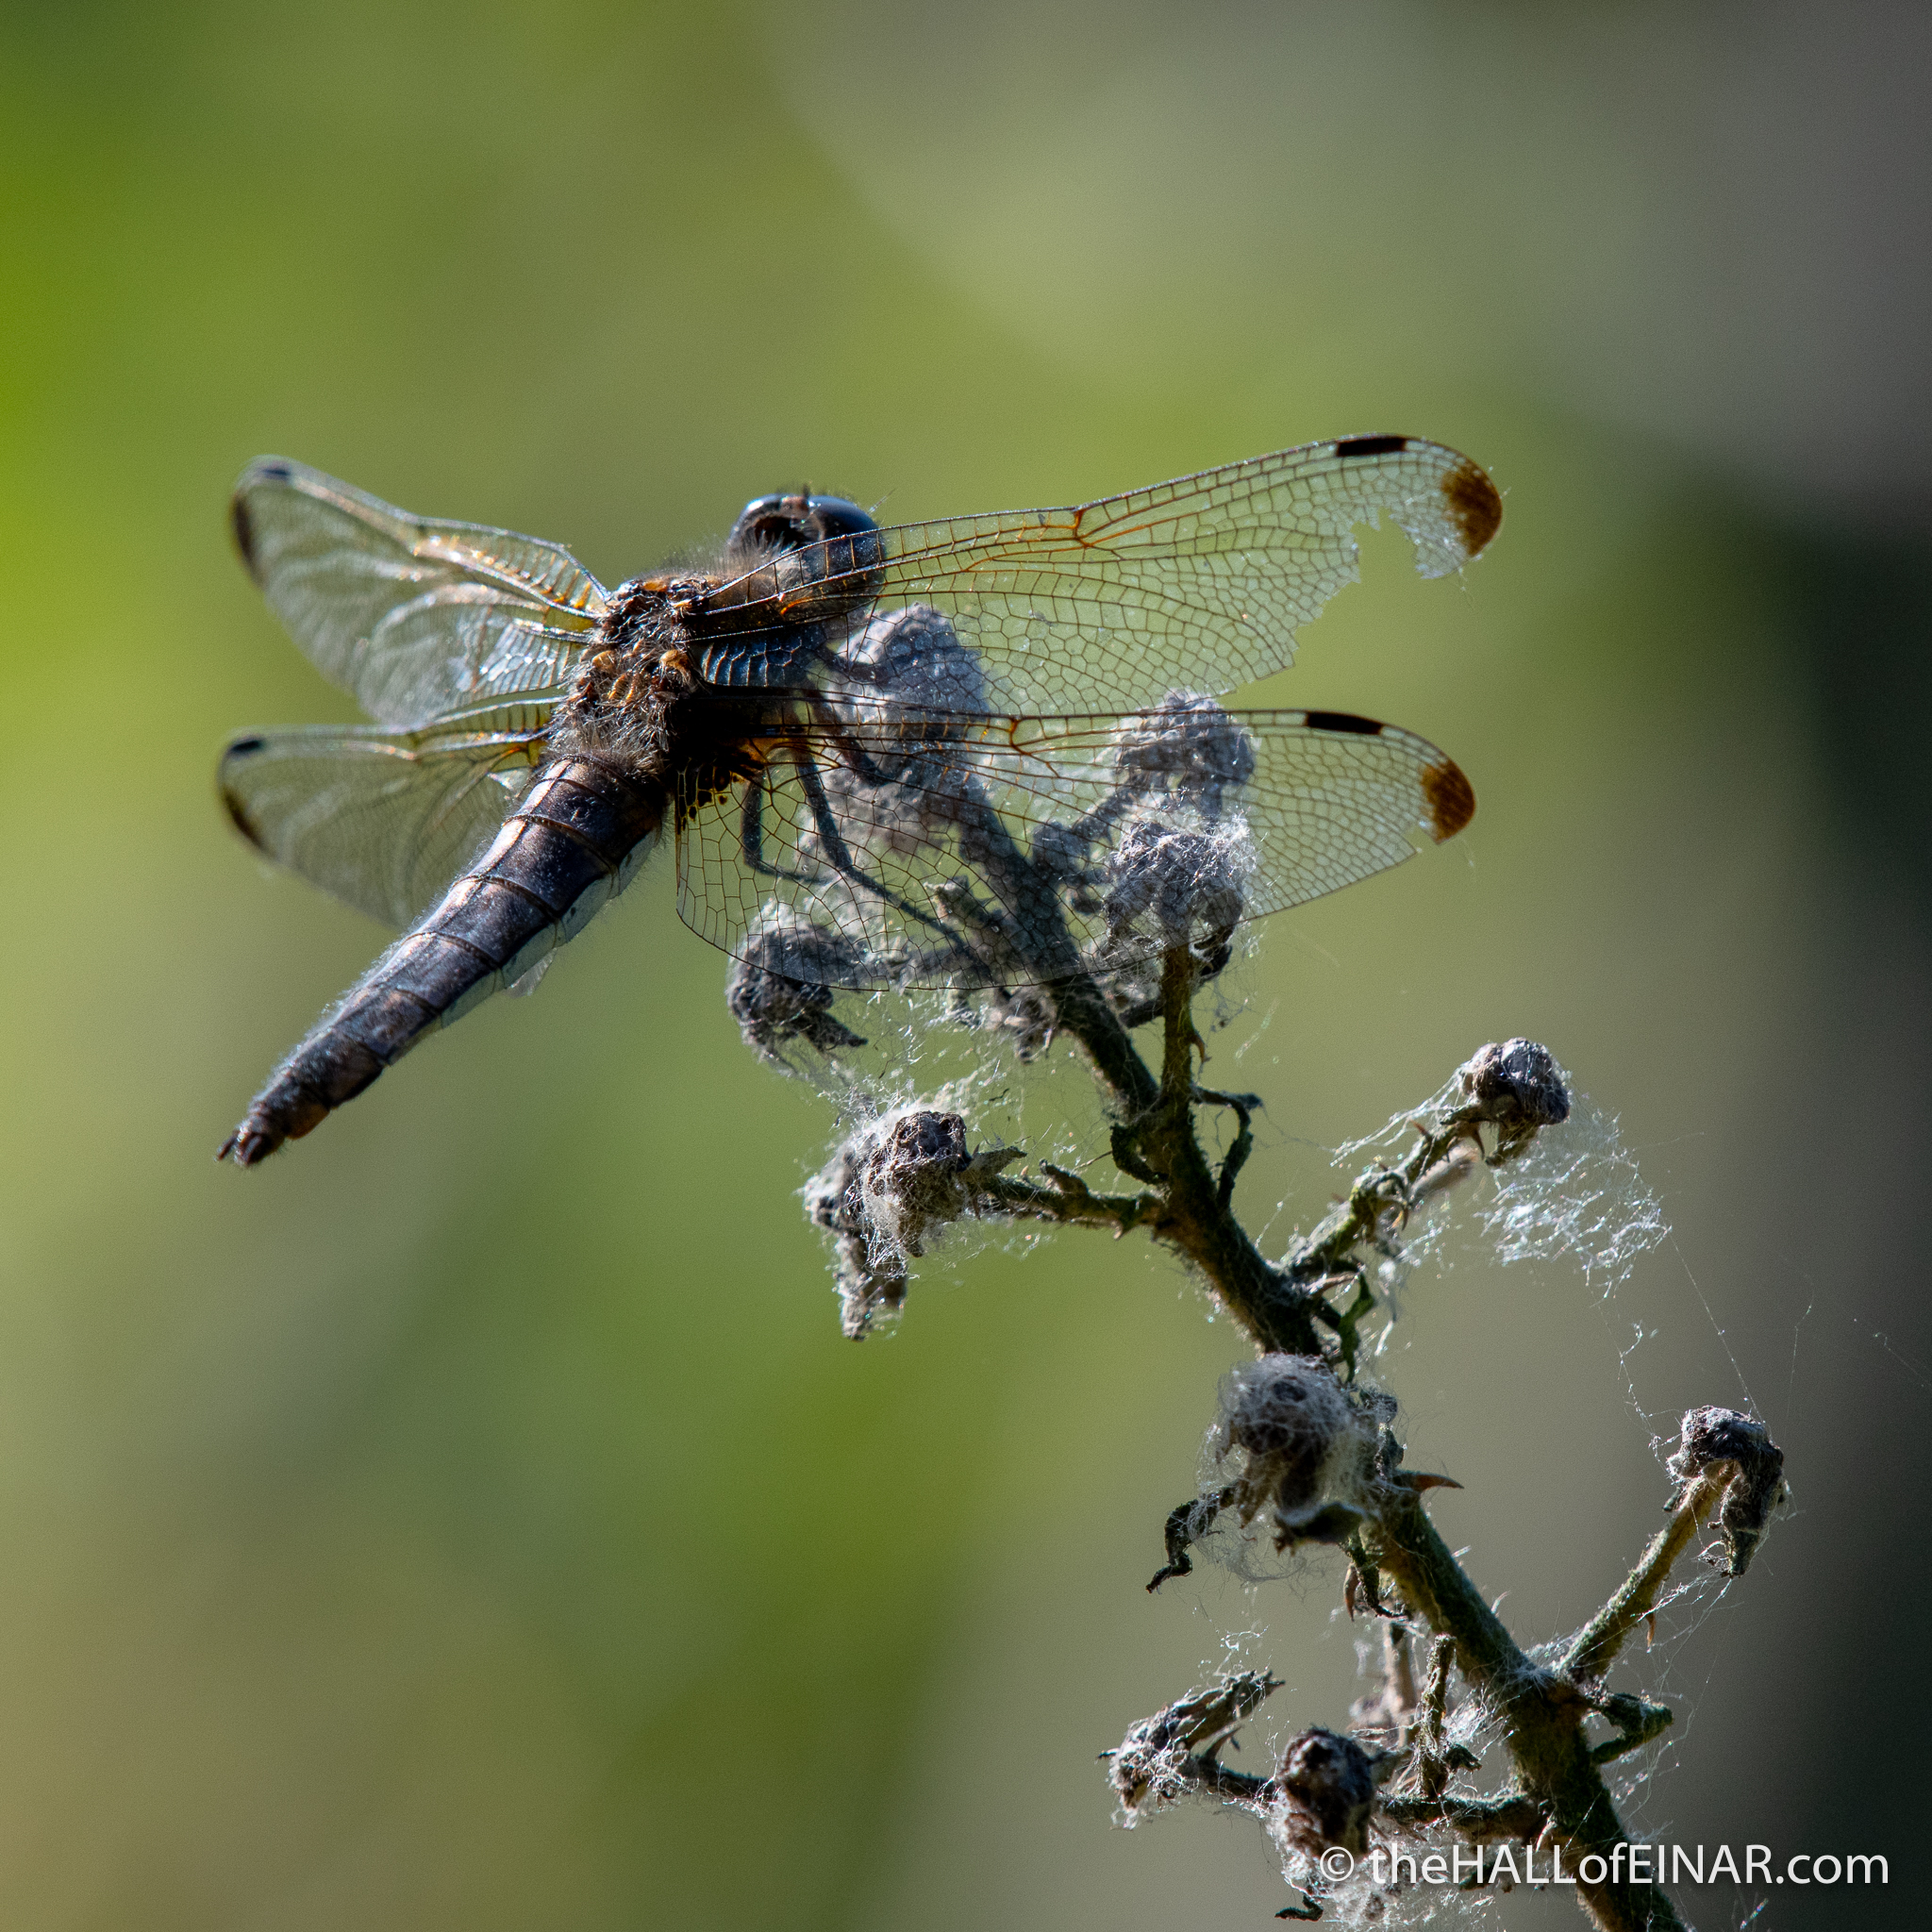 Broad-Bodied Chaser dragonfly - The Hall of Einar - photograph (c) David Bailey (not the)